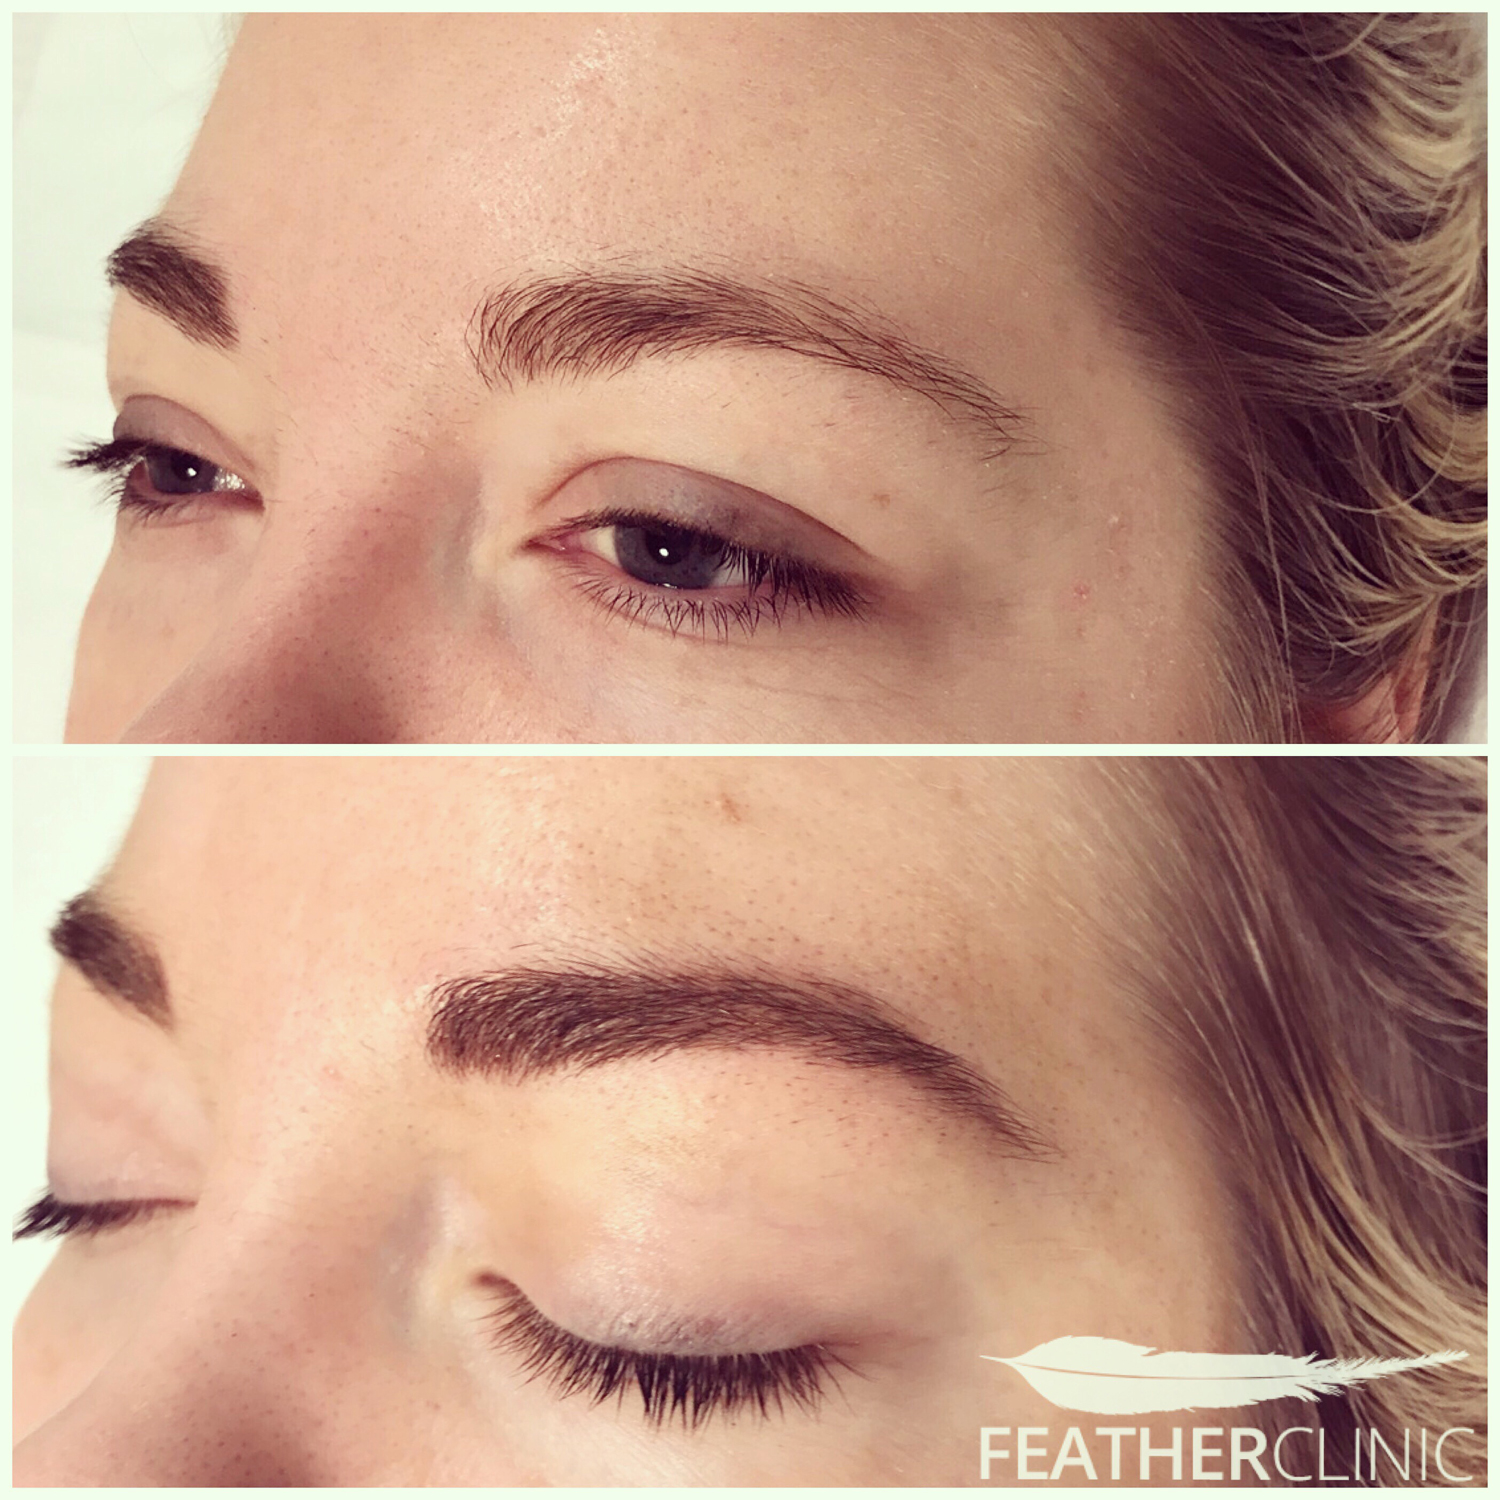 Feather touch brows before and after pics | Feather Clinic